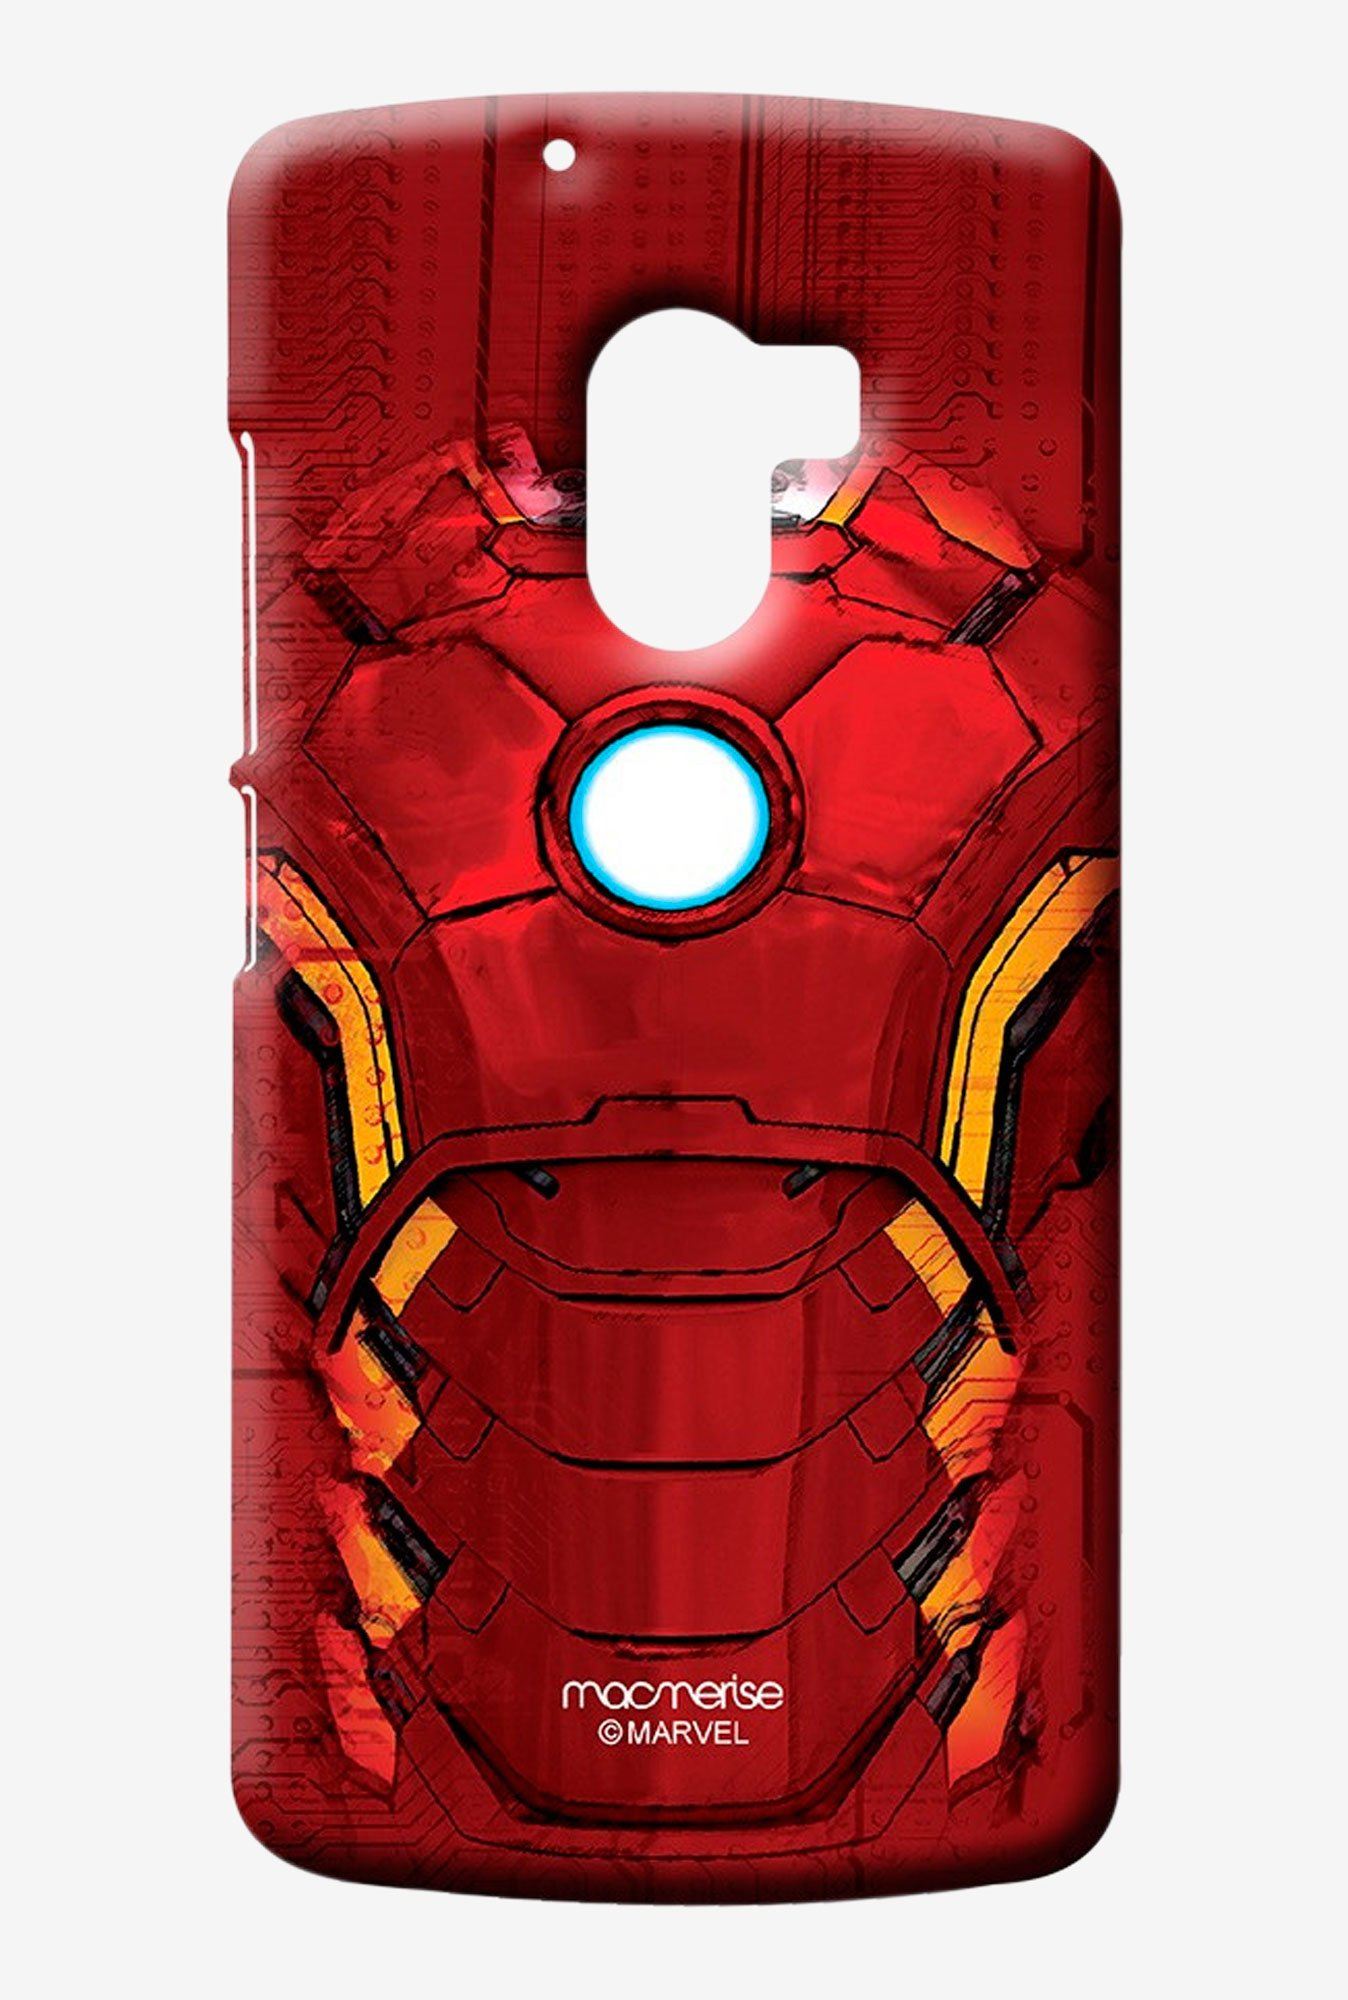 Macmerise Suit of Armour Sublime Case for Lenovo K4 Note